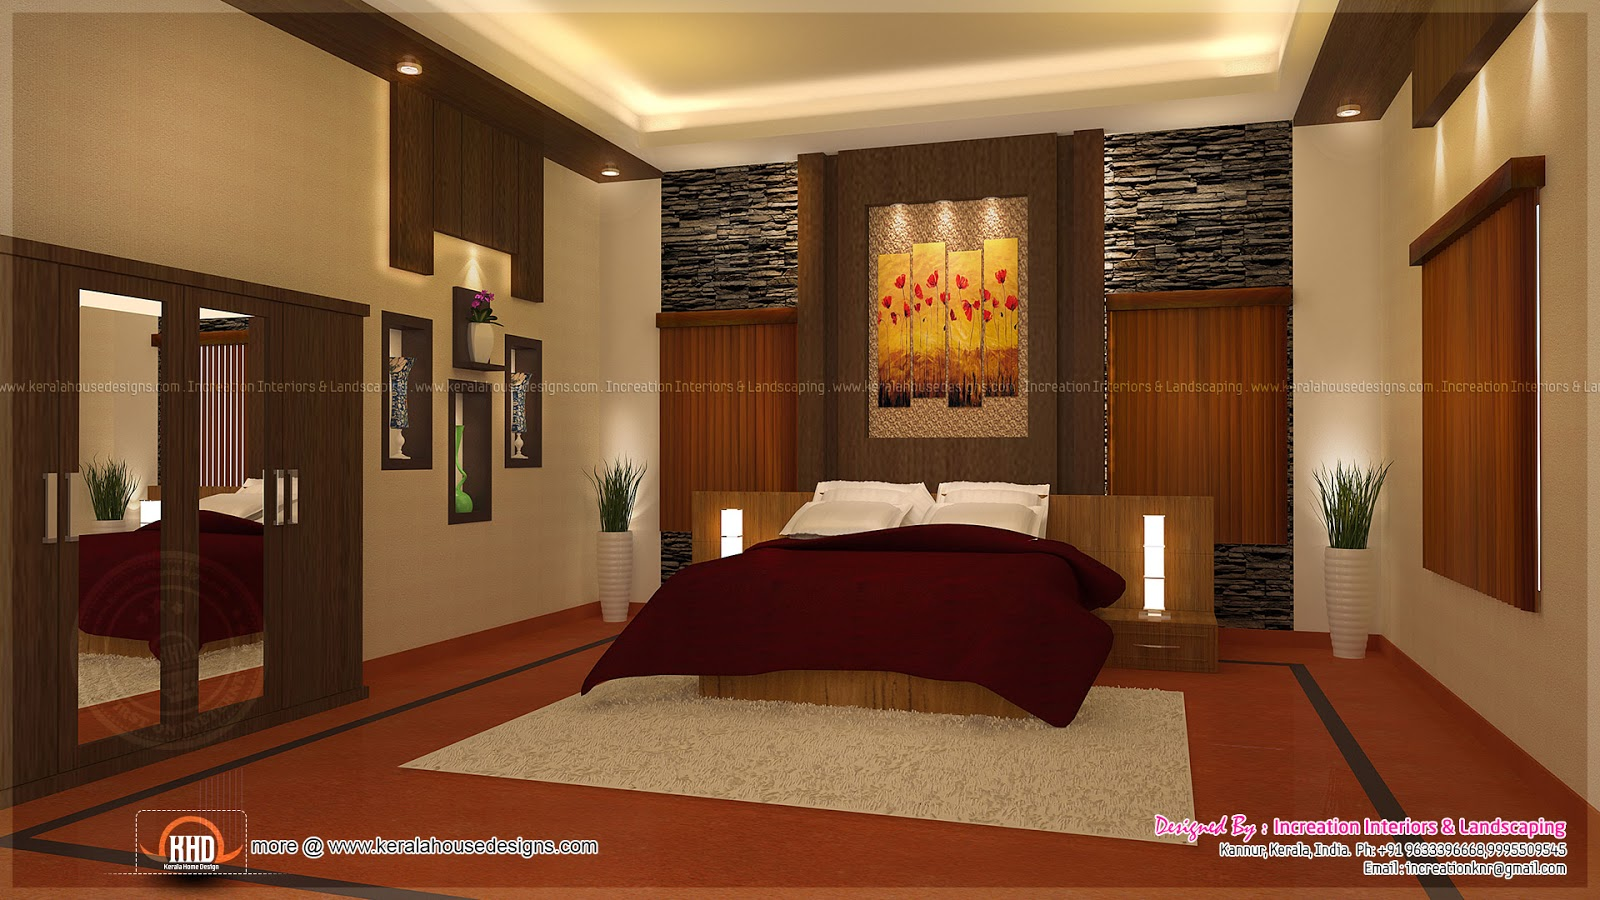 bedroom interior design house interior ideas in 3d rendering kerala home design 10504